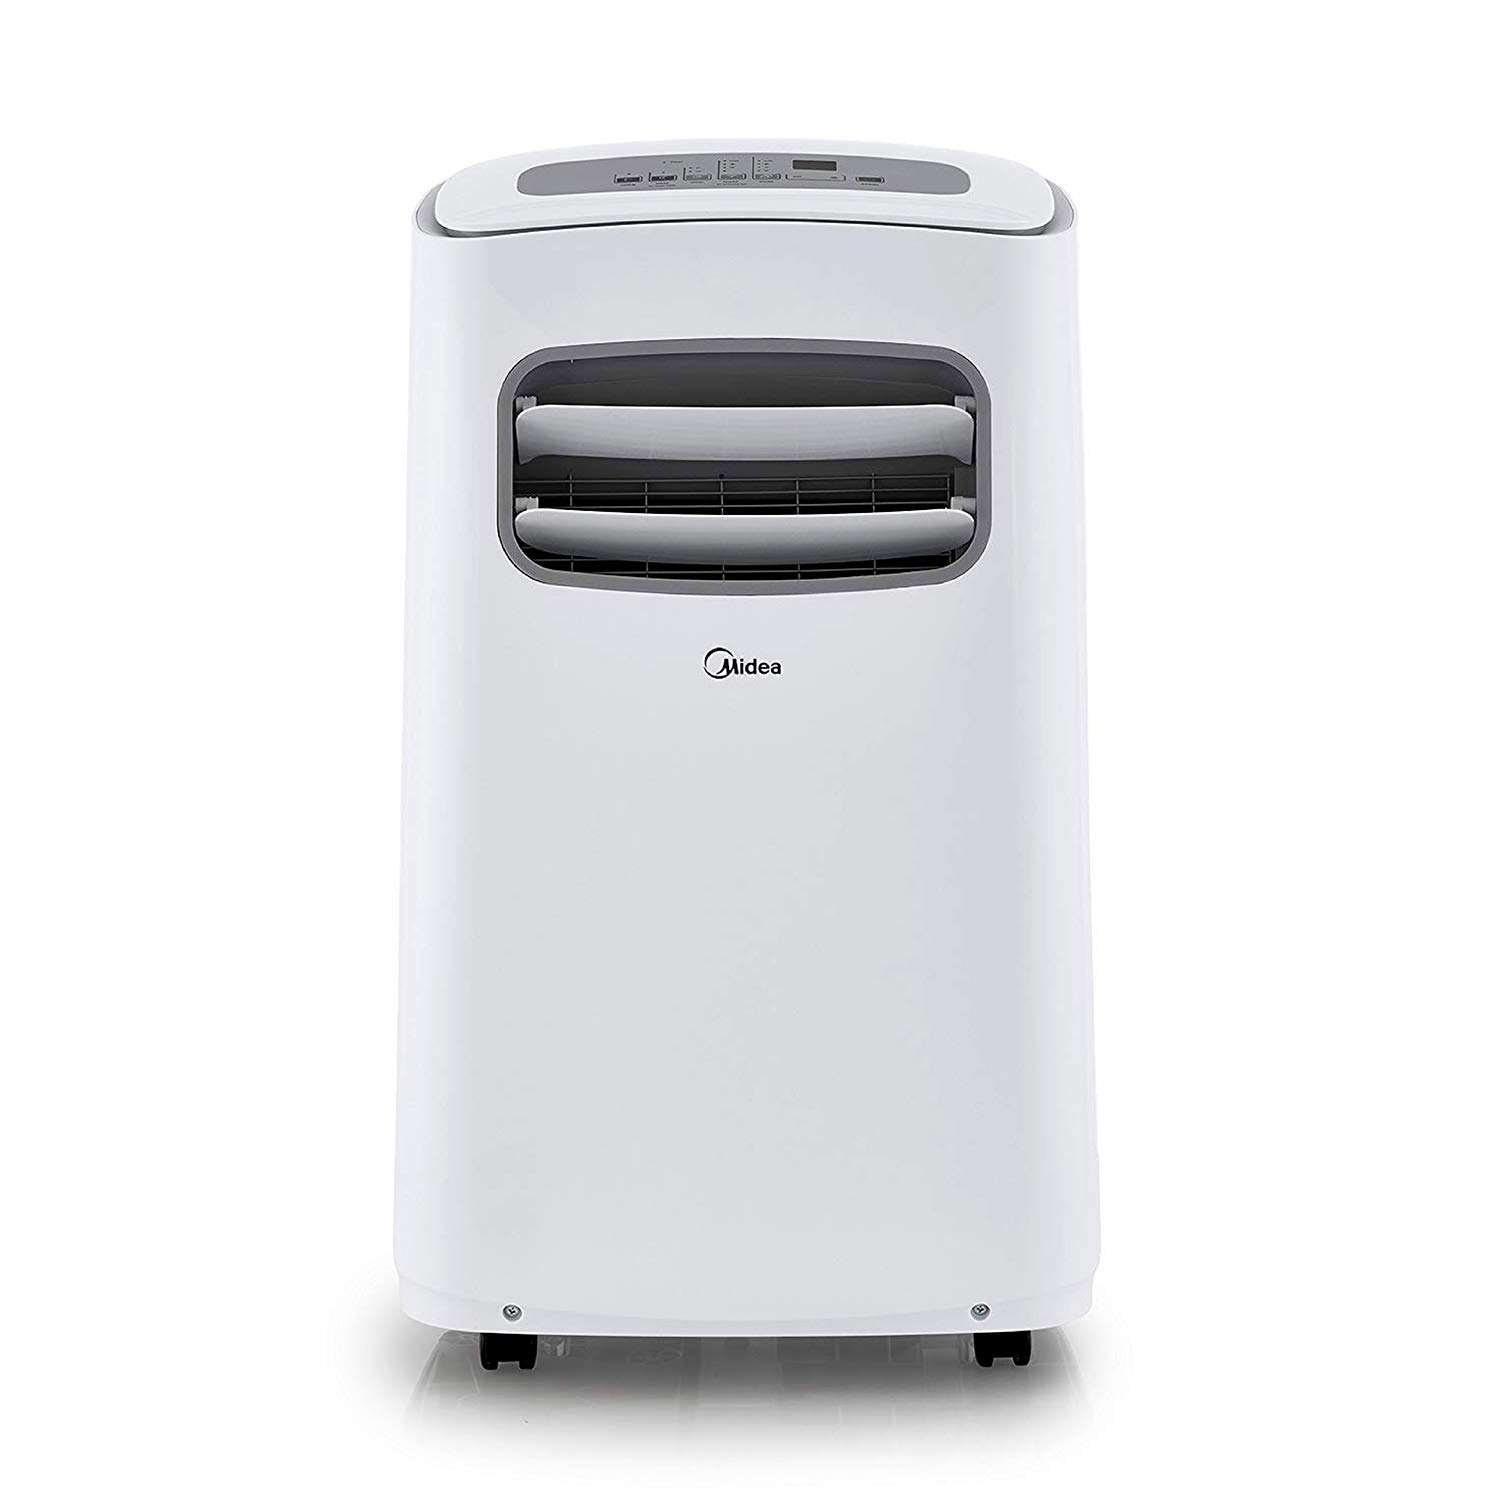 MIDEA MPF14CR81-E Portable Air Conditioner 14000 BTU Easycool AC (Cooling, Dehumidifier and Fan Functions) for Rooms up to 350 Sq, ft. with Remote Control, 14,000, White